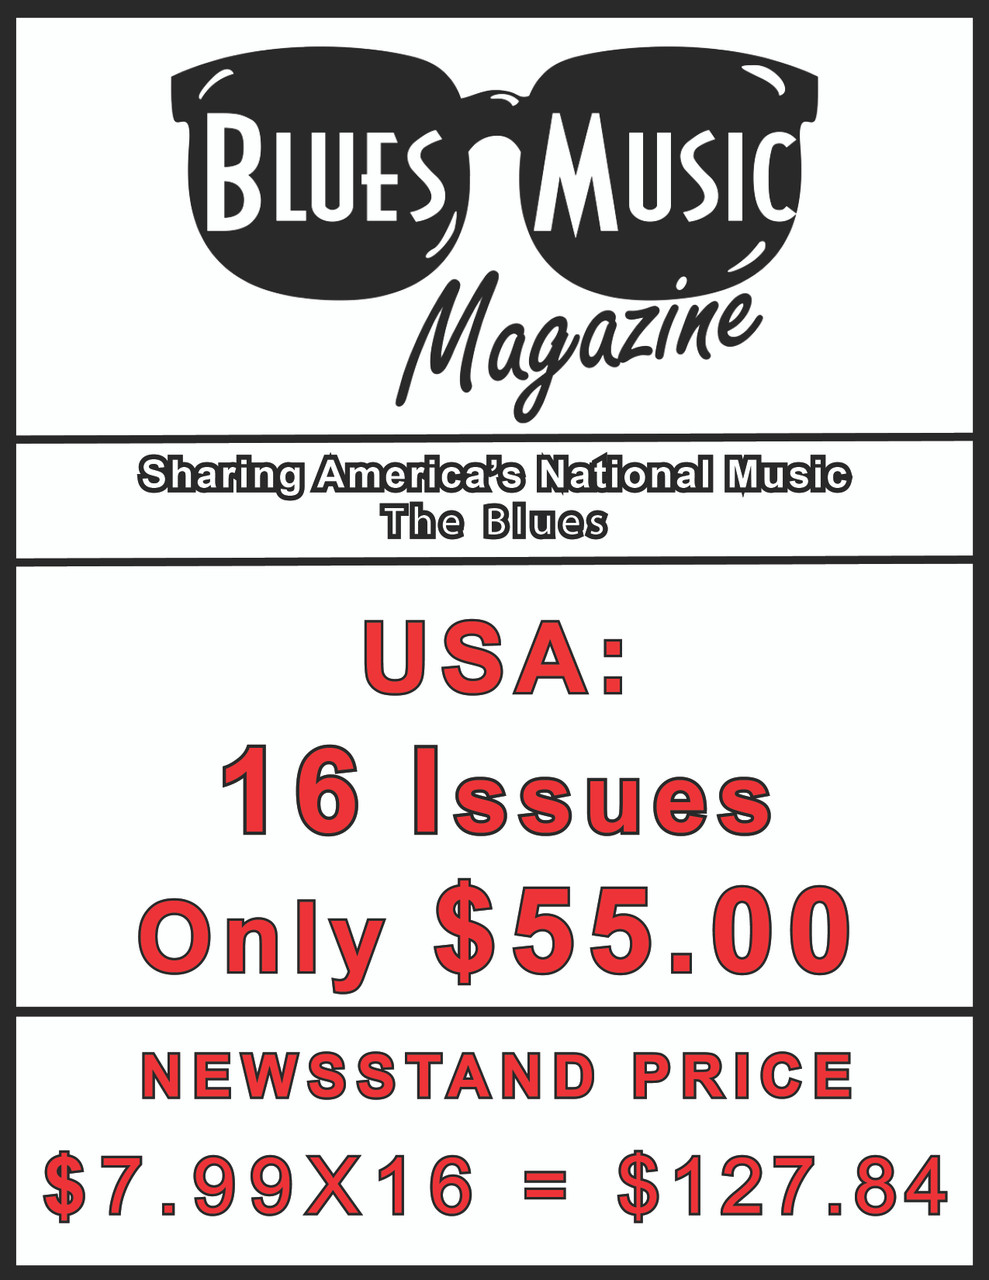 USA SUBSCRIBE OR RENEW FOR 16 ISSUES = 4 YEARS